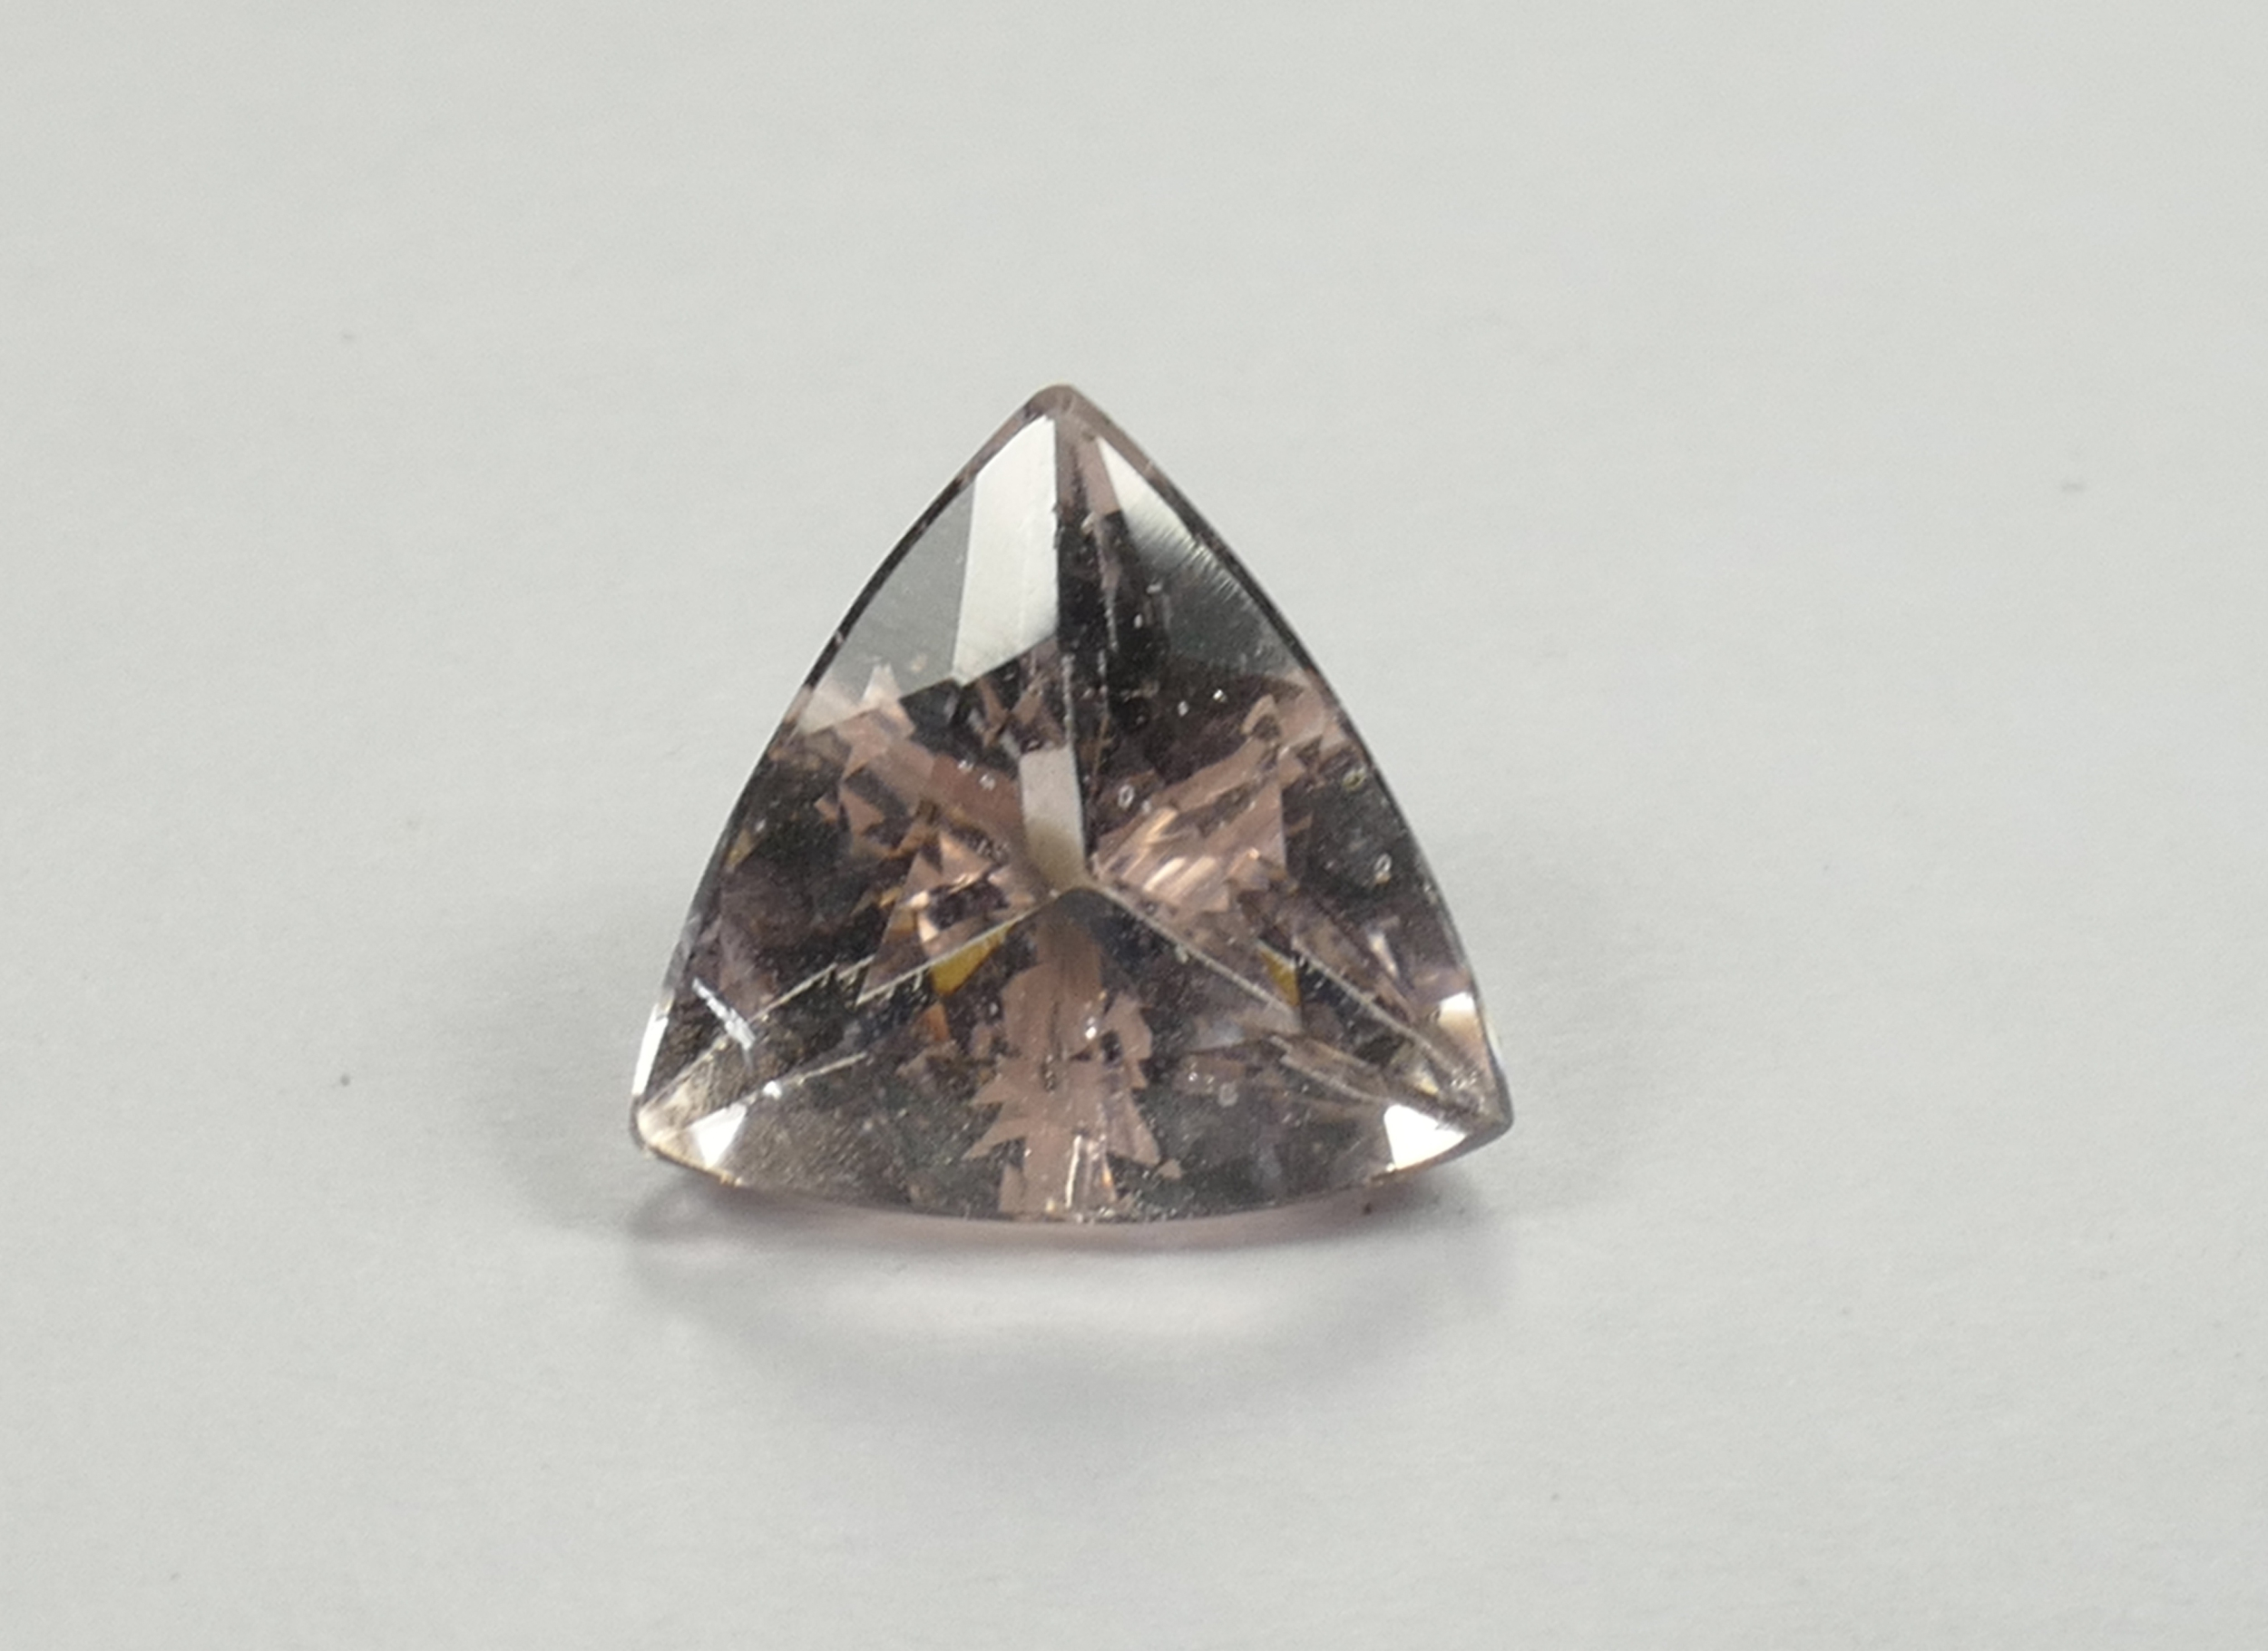 8mm Morganite Béryl rose naturelle triangle trillion 1.65ct Brésil (#PB614)